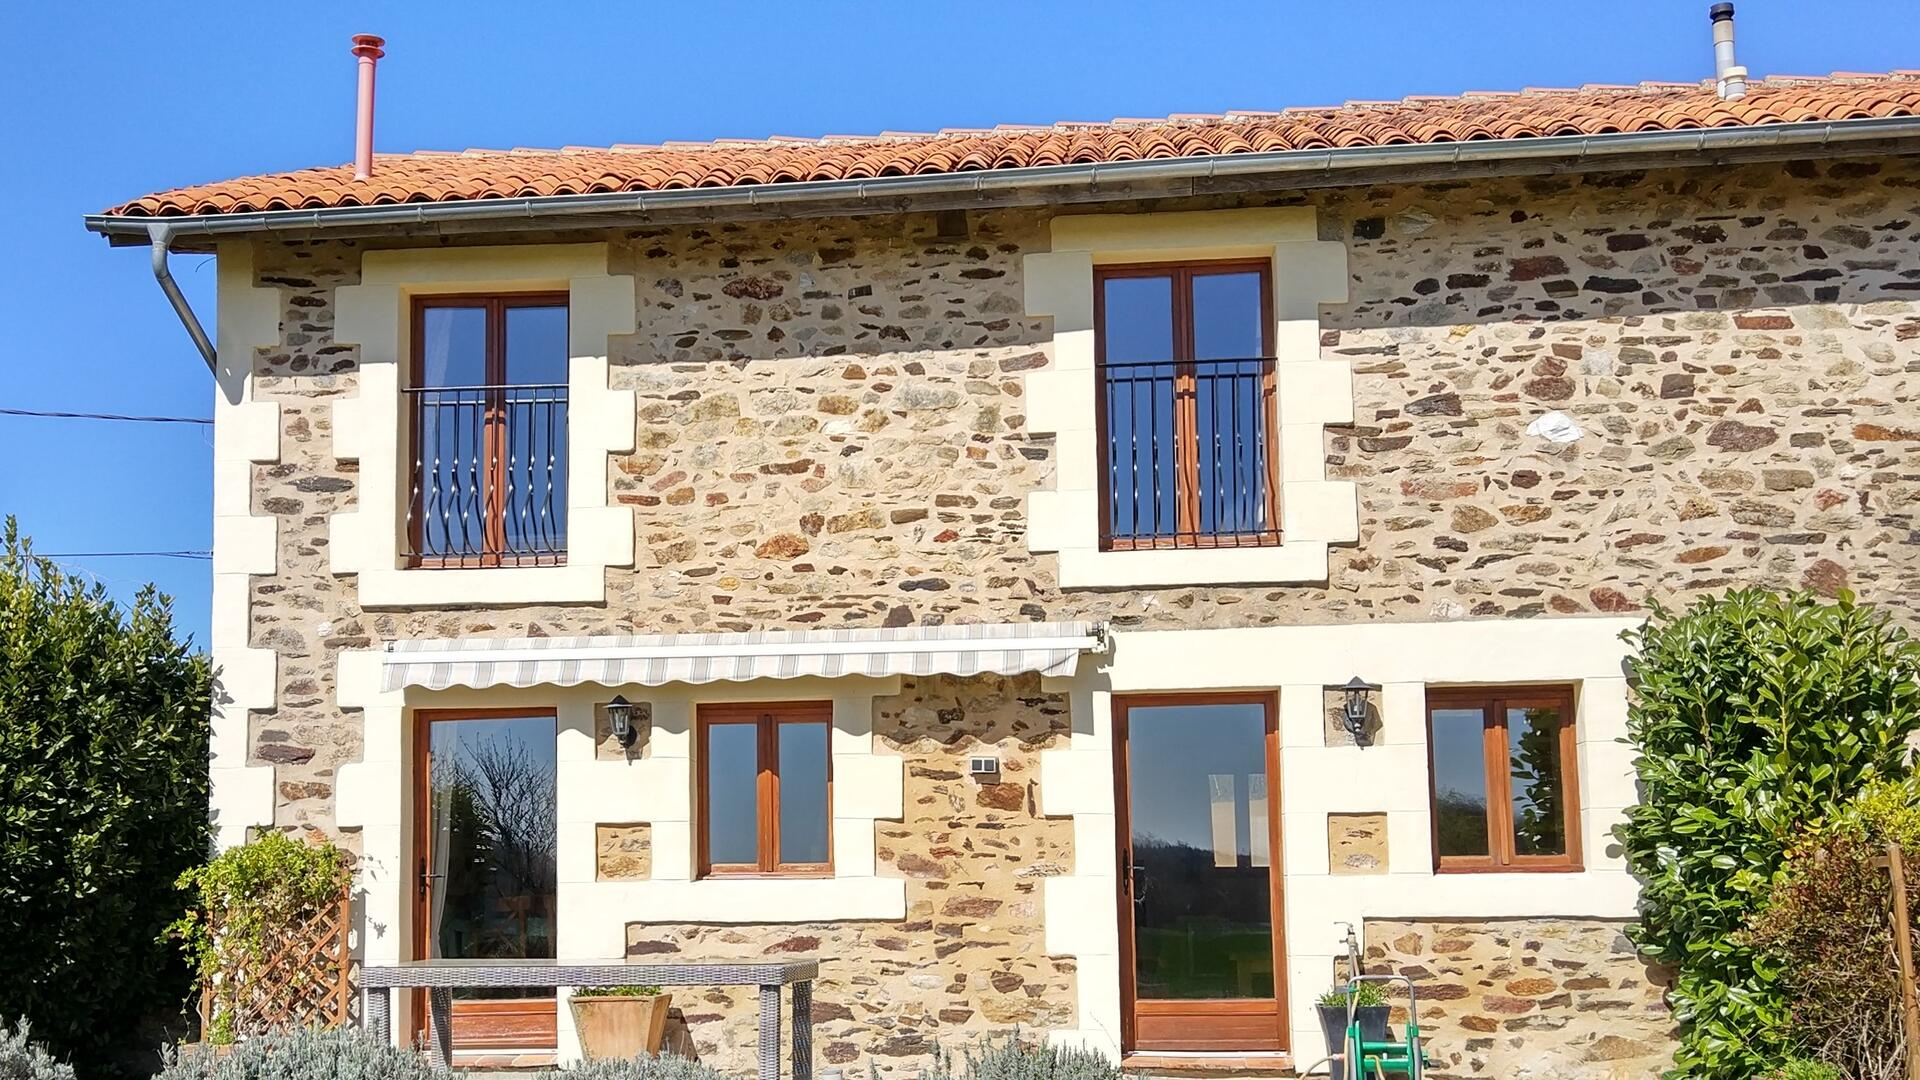 2 Bedroom Private cottage in Poitou-Charentes, France